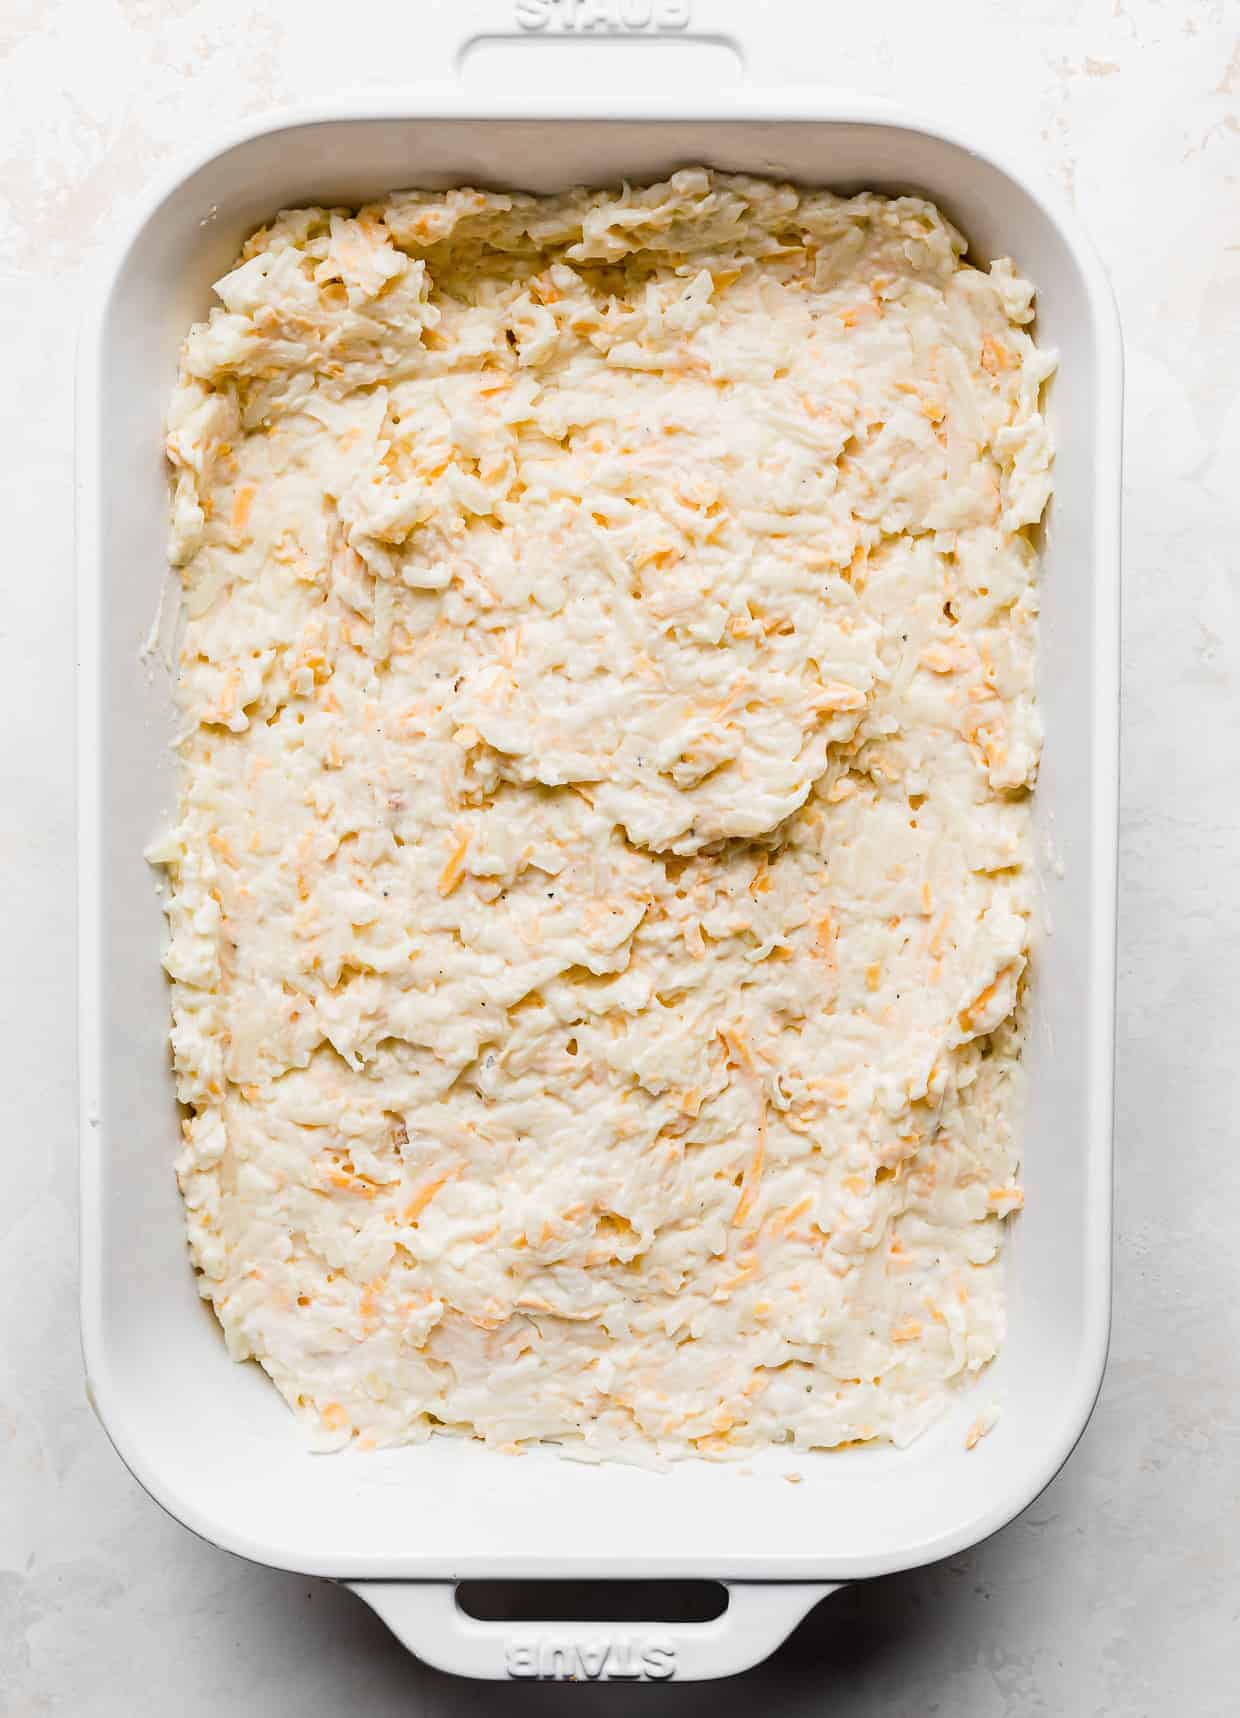 A white casserole dish full of leveled funeral potatoes against a white background.